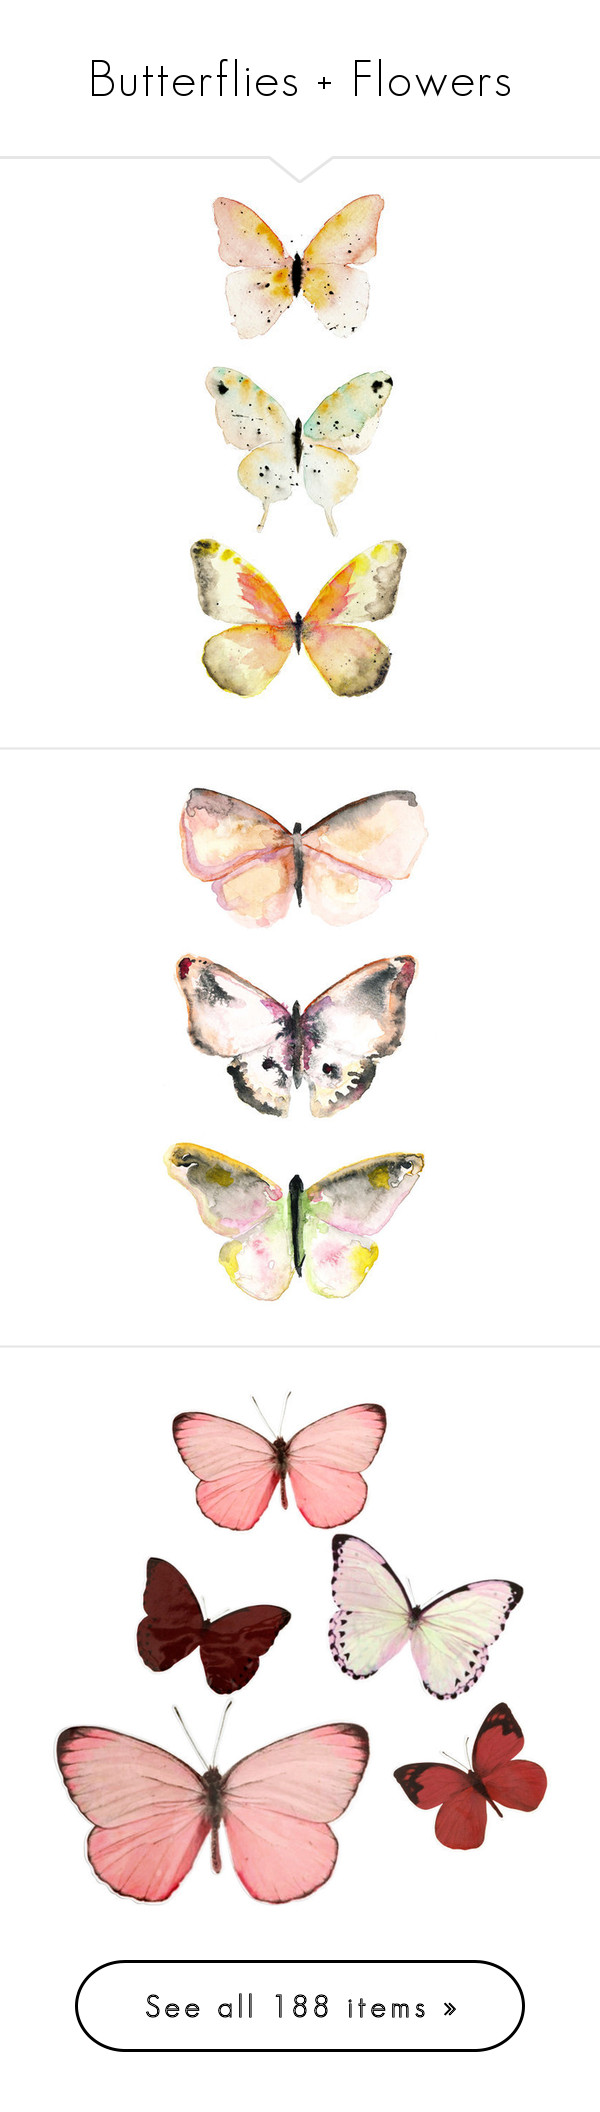 Butterflies Flowers By Intanology Liked On Polyvore Featuring Home Decor Butterfly DrawingButterfly Wall